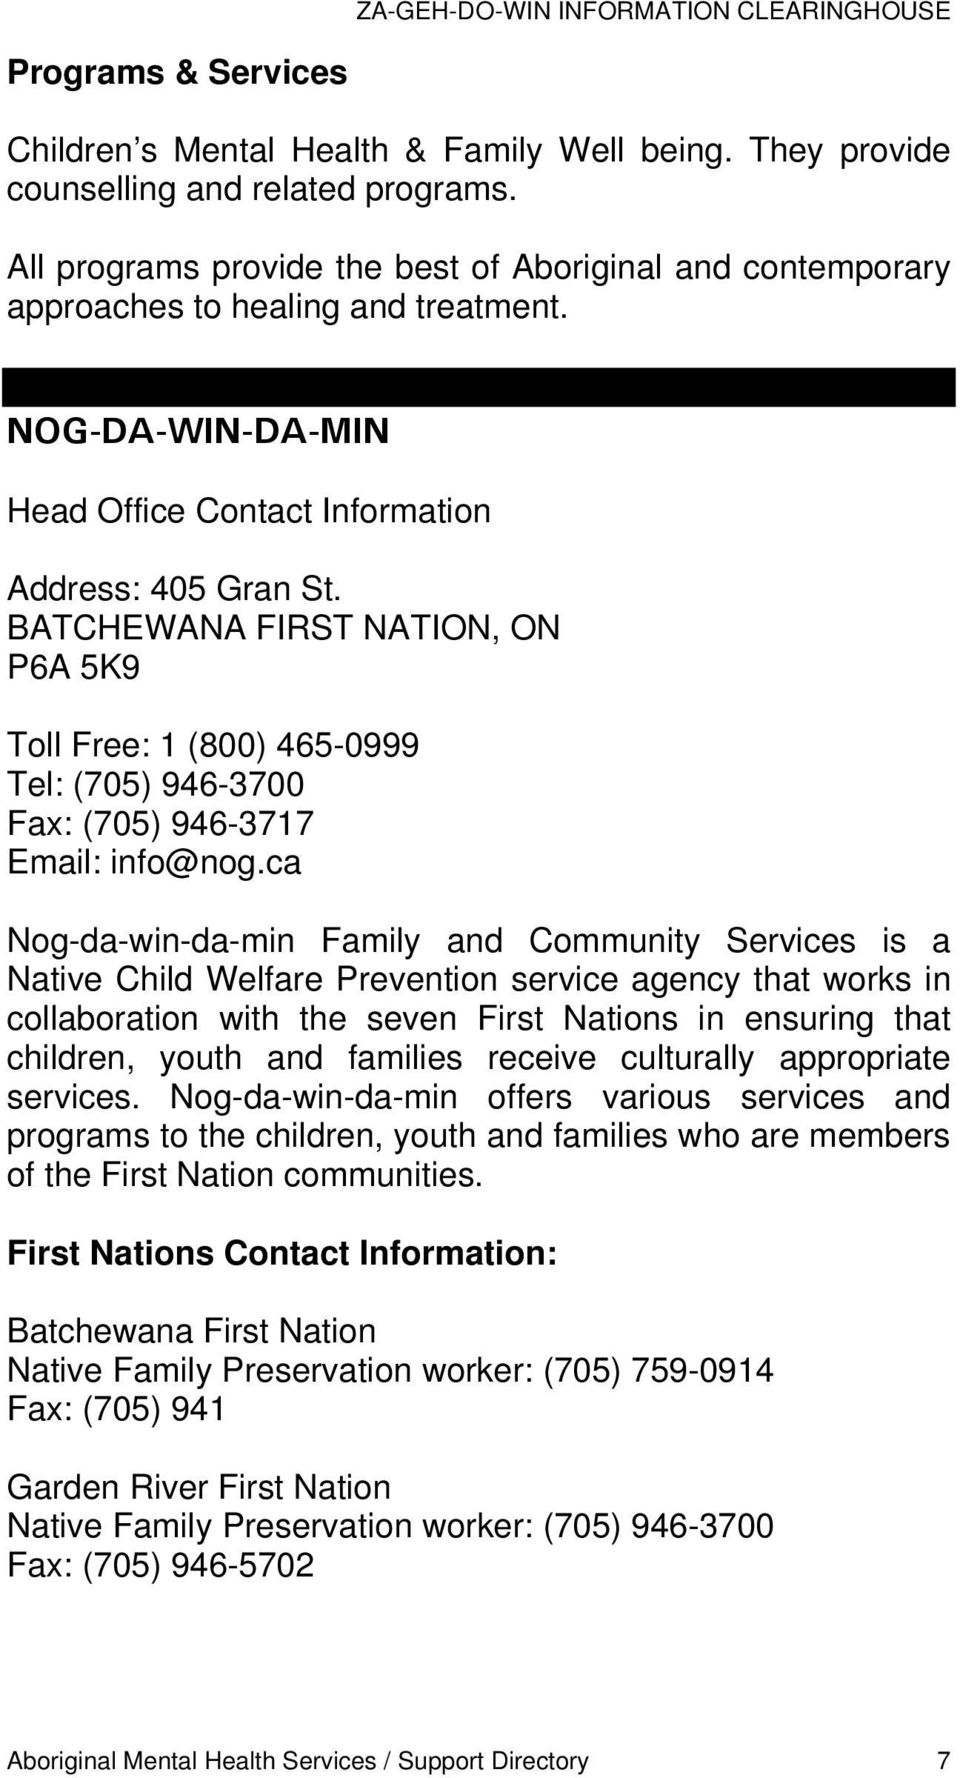 BATCHEWANA FIRST NATION, ON P6A 5K9 Toll Free: 1 (800) 465-0999 Tel: (705) 946-3700 Fax: (705) 946-3717 Email: info@nog.